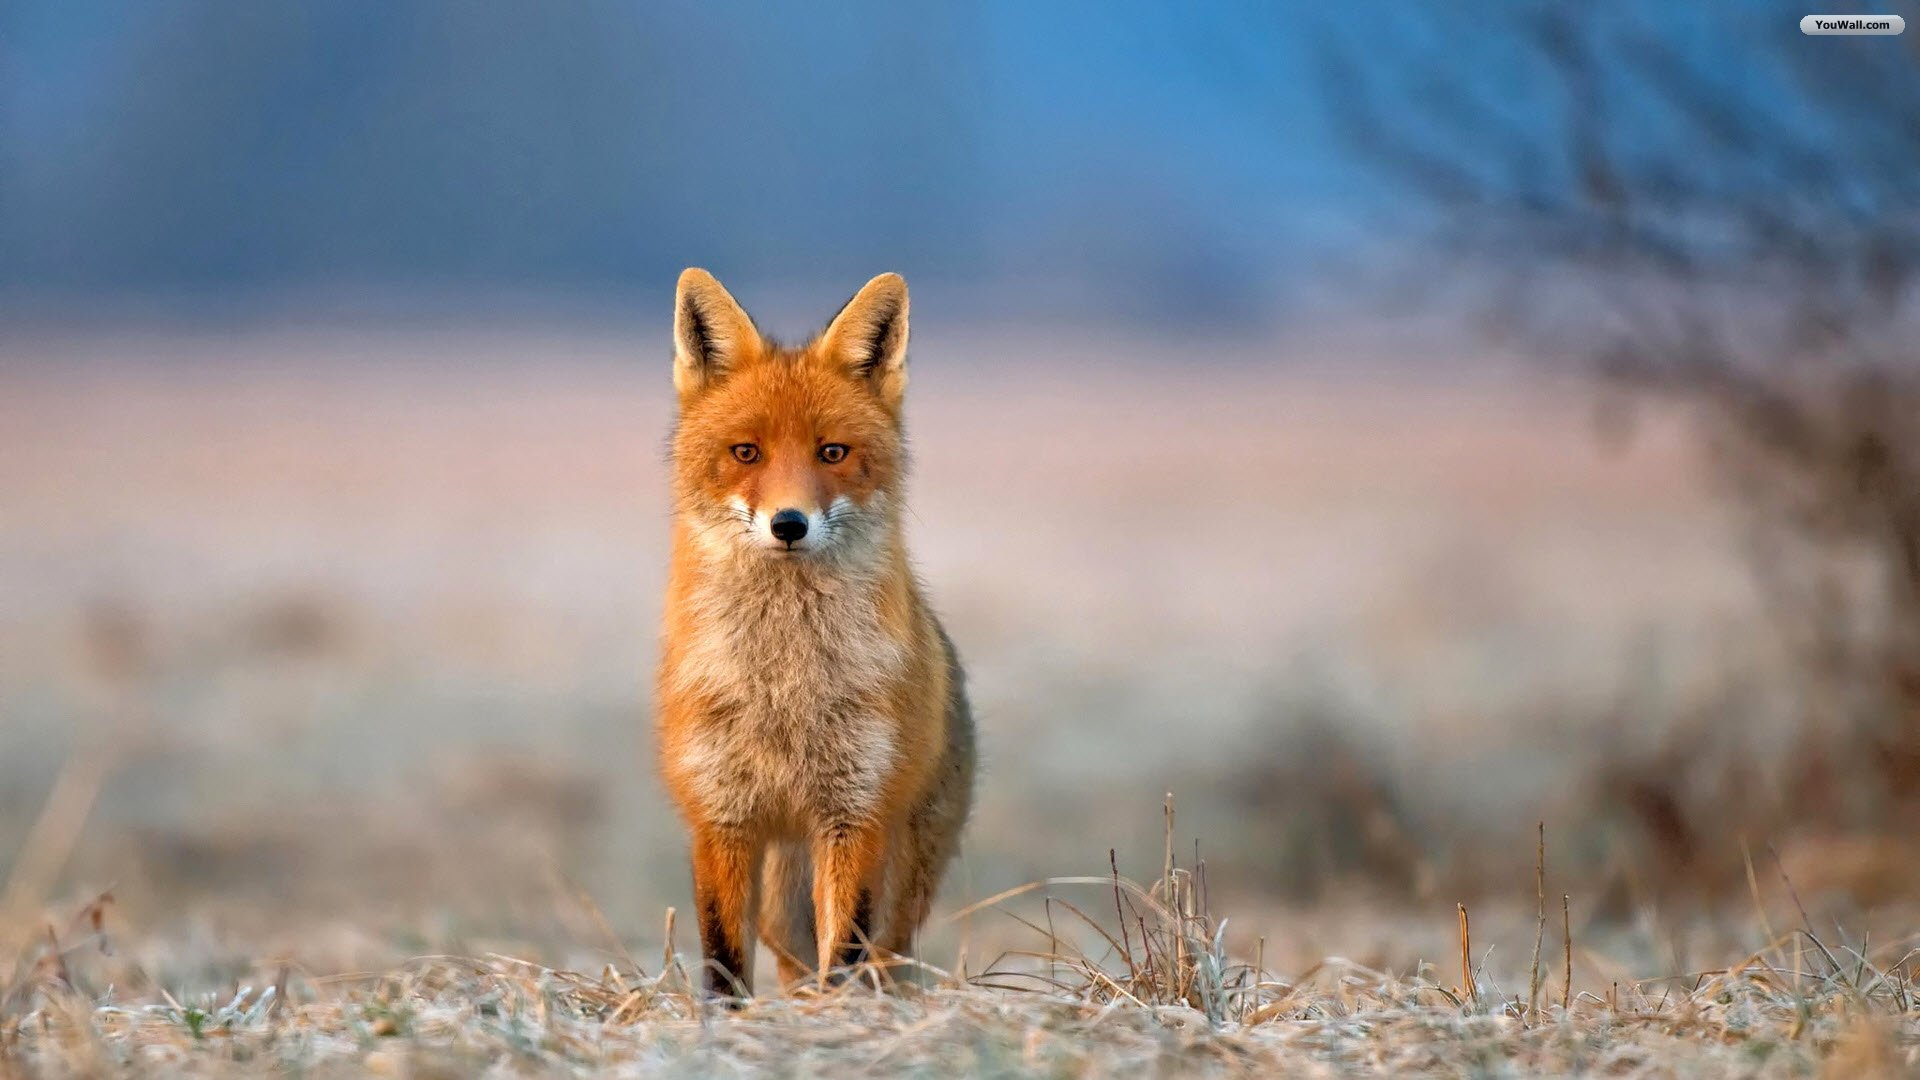 Fox Wallpapers Hd Full Hd Pictures